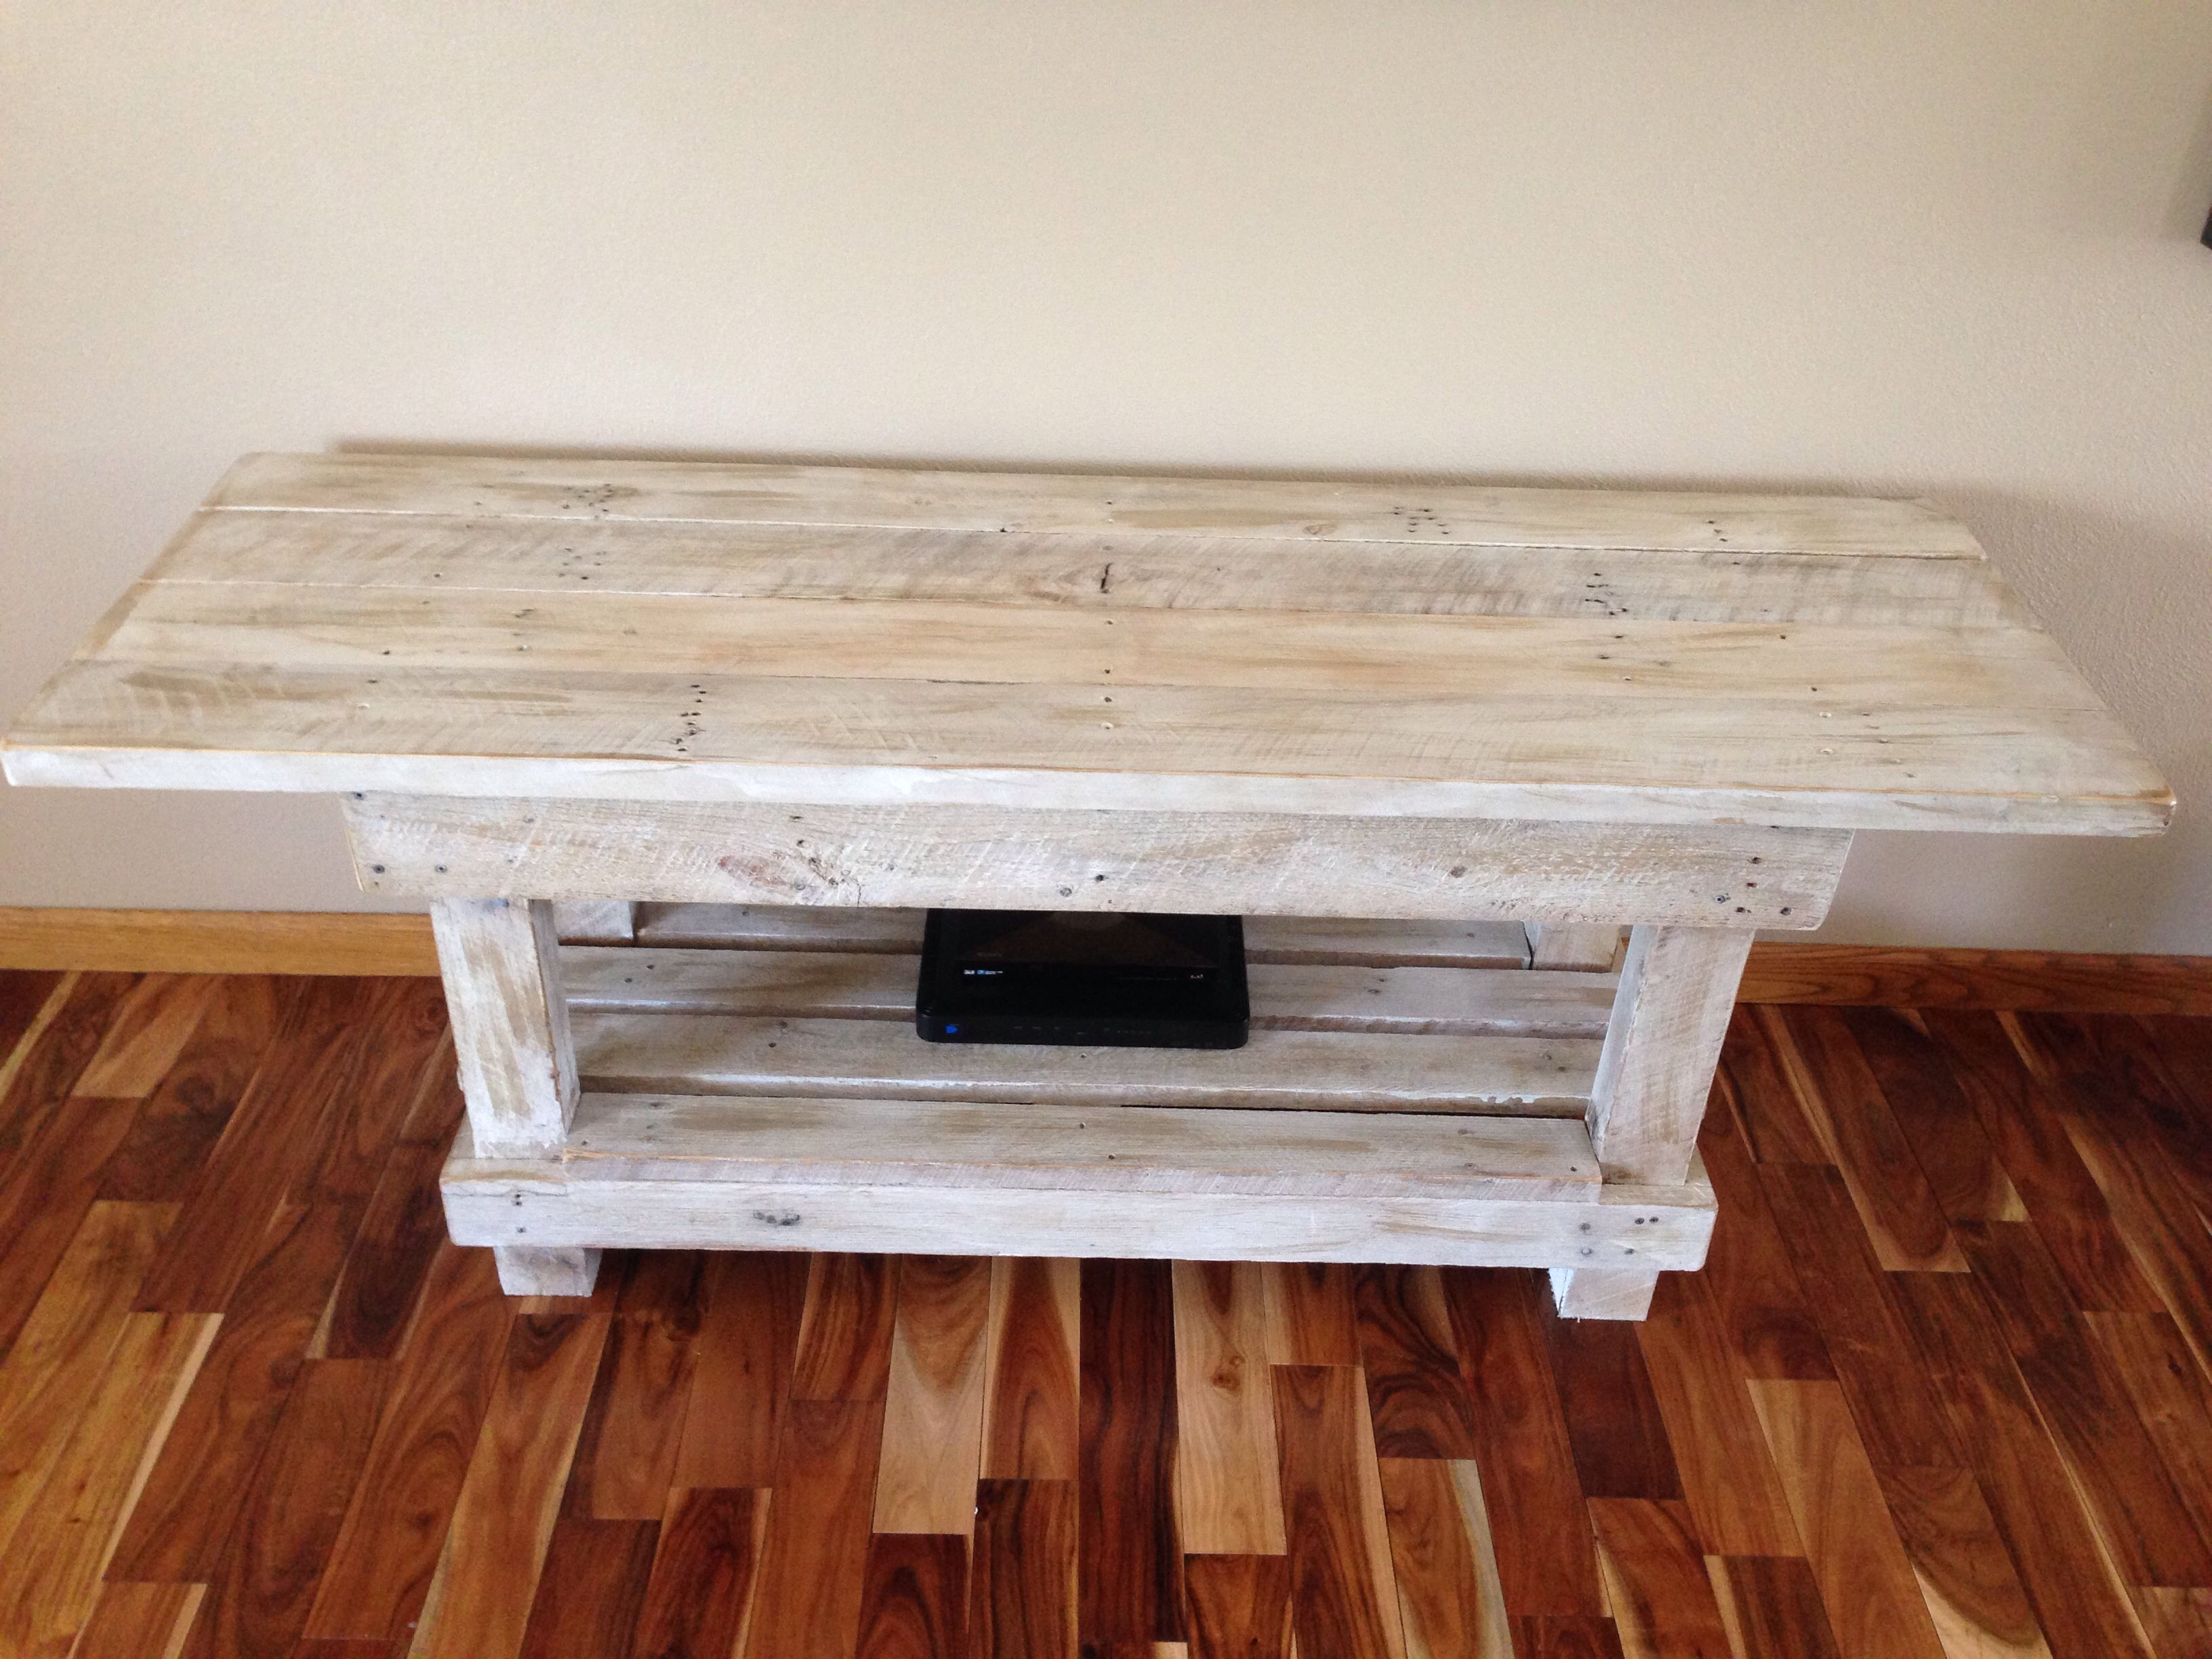 Reclaimed Wood Table, White Washed And Distressed With Stain. 2x6 Boards On  Top 4x4